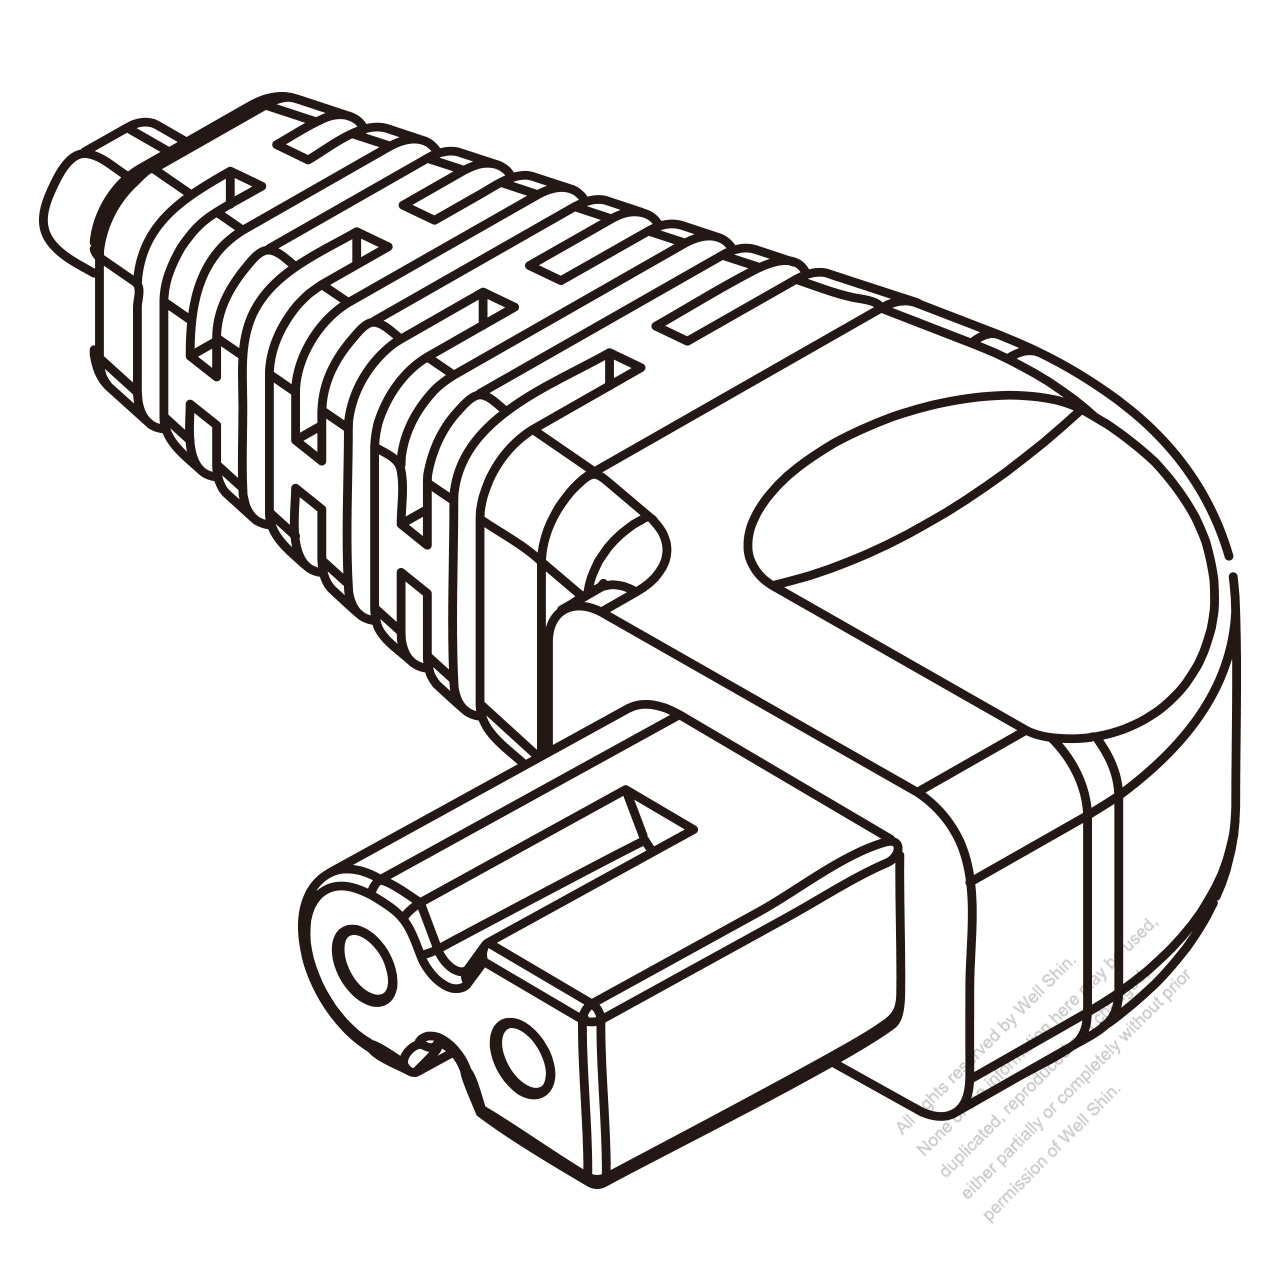 Iec 320 C7 Connectors 2 Pin Angle 2 5a 250v